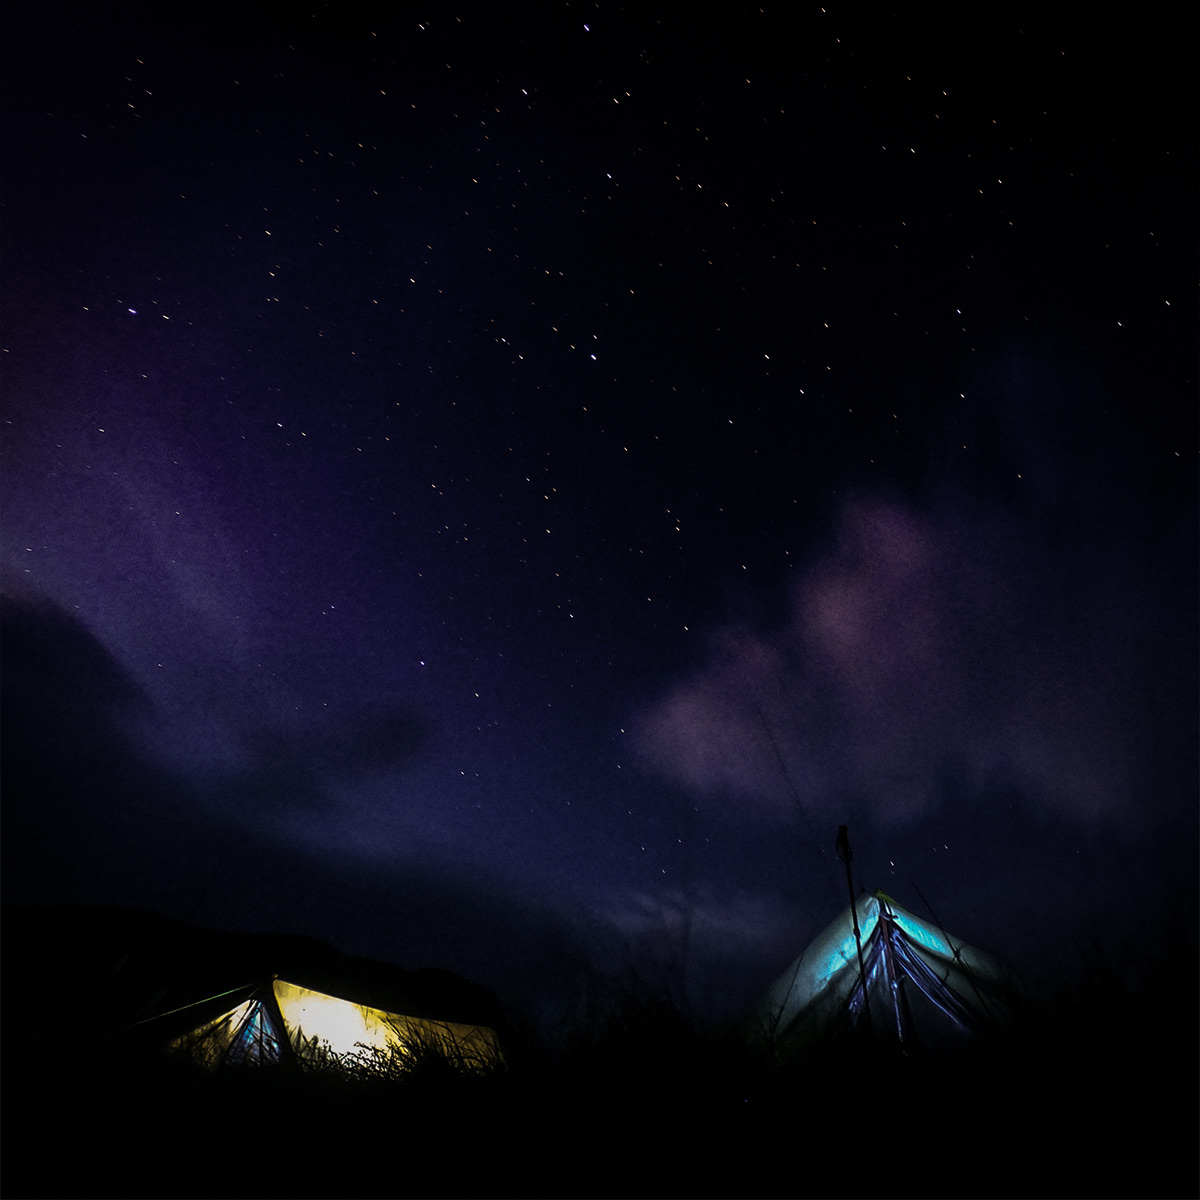 Wild Camping in Dovedale - Night